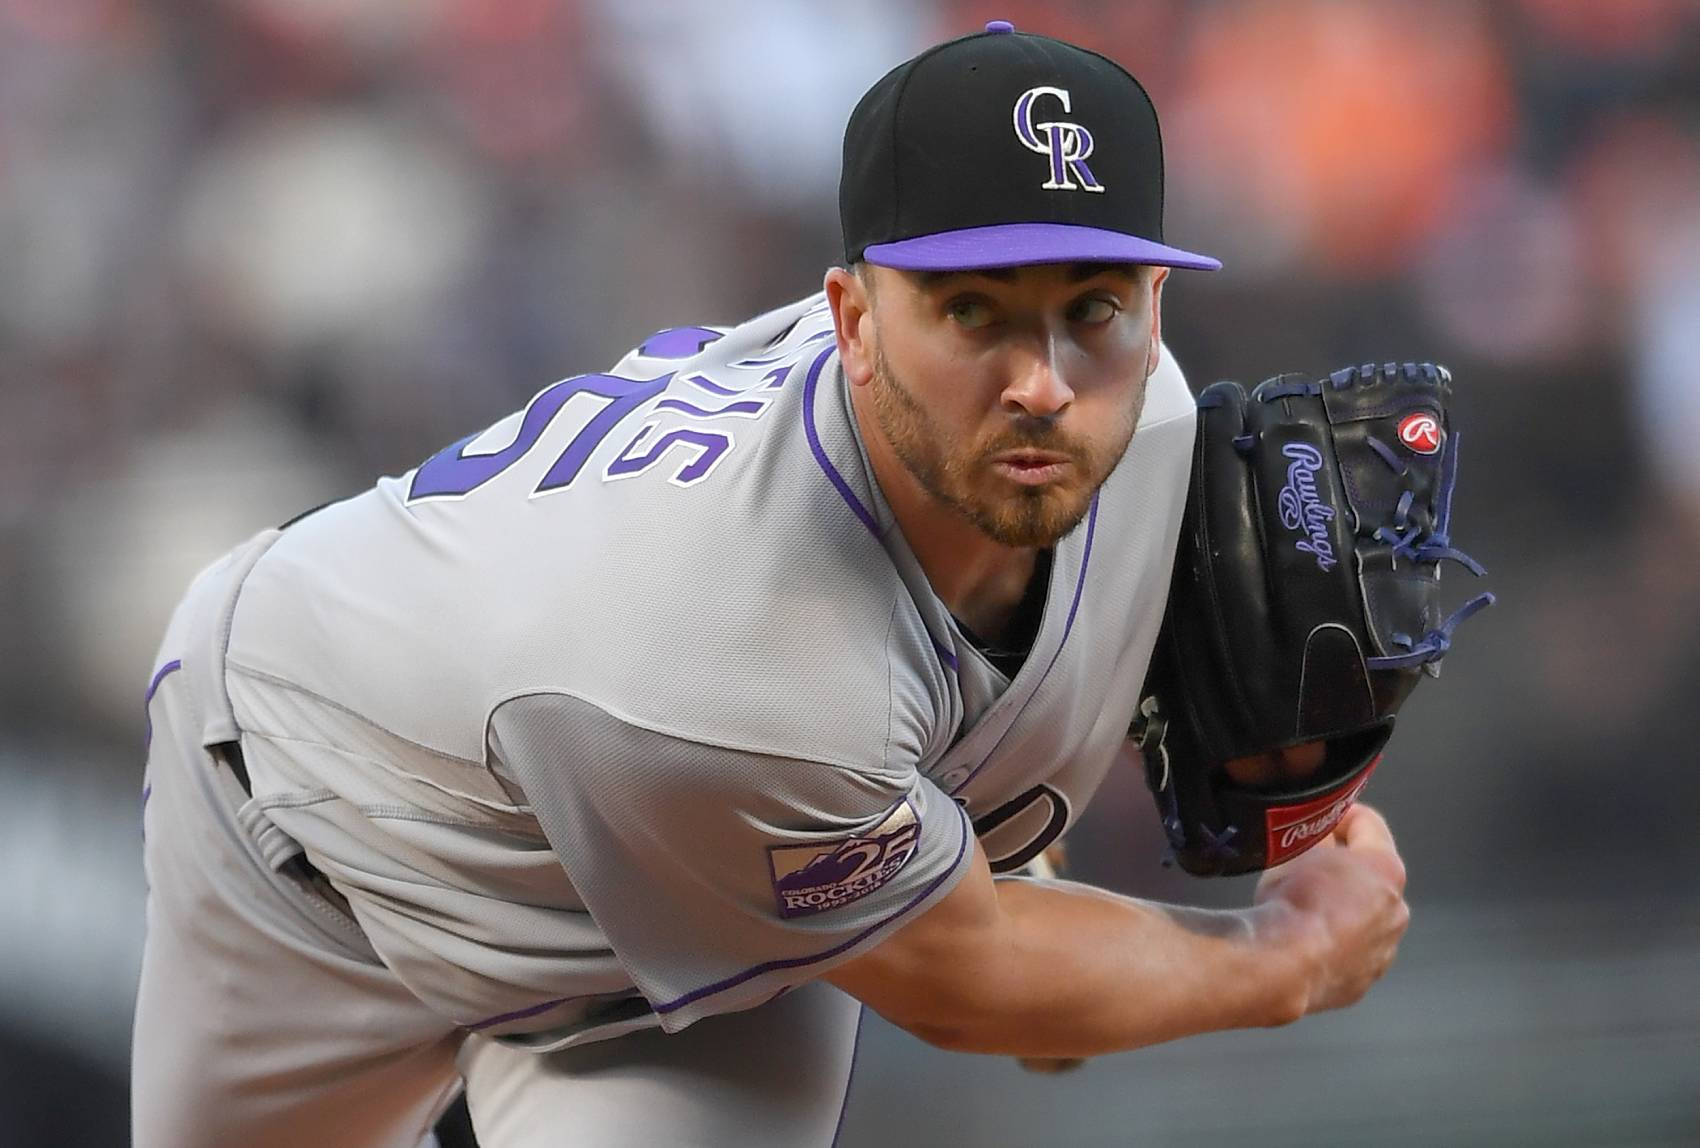 Cancer Survivor Chad Bettis Is Leaving Baseball With His 'Head Held High'